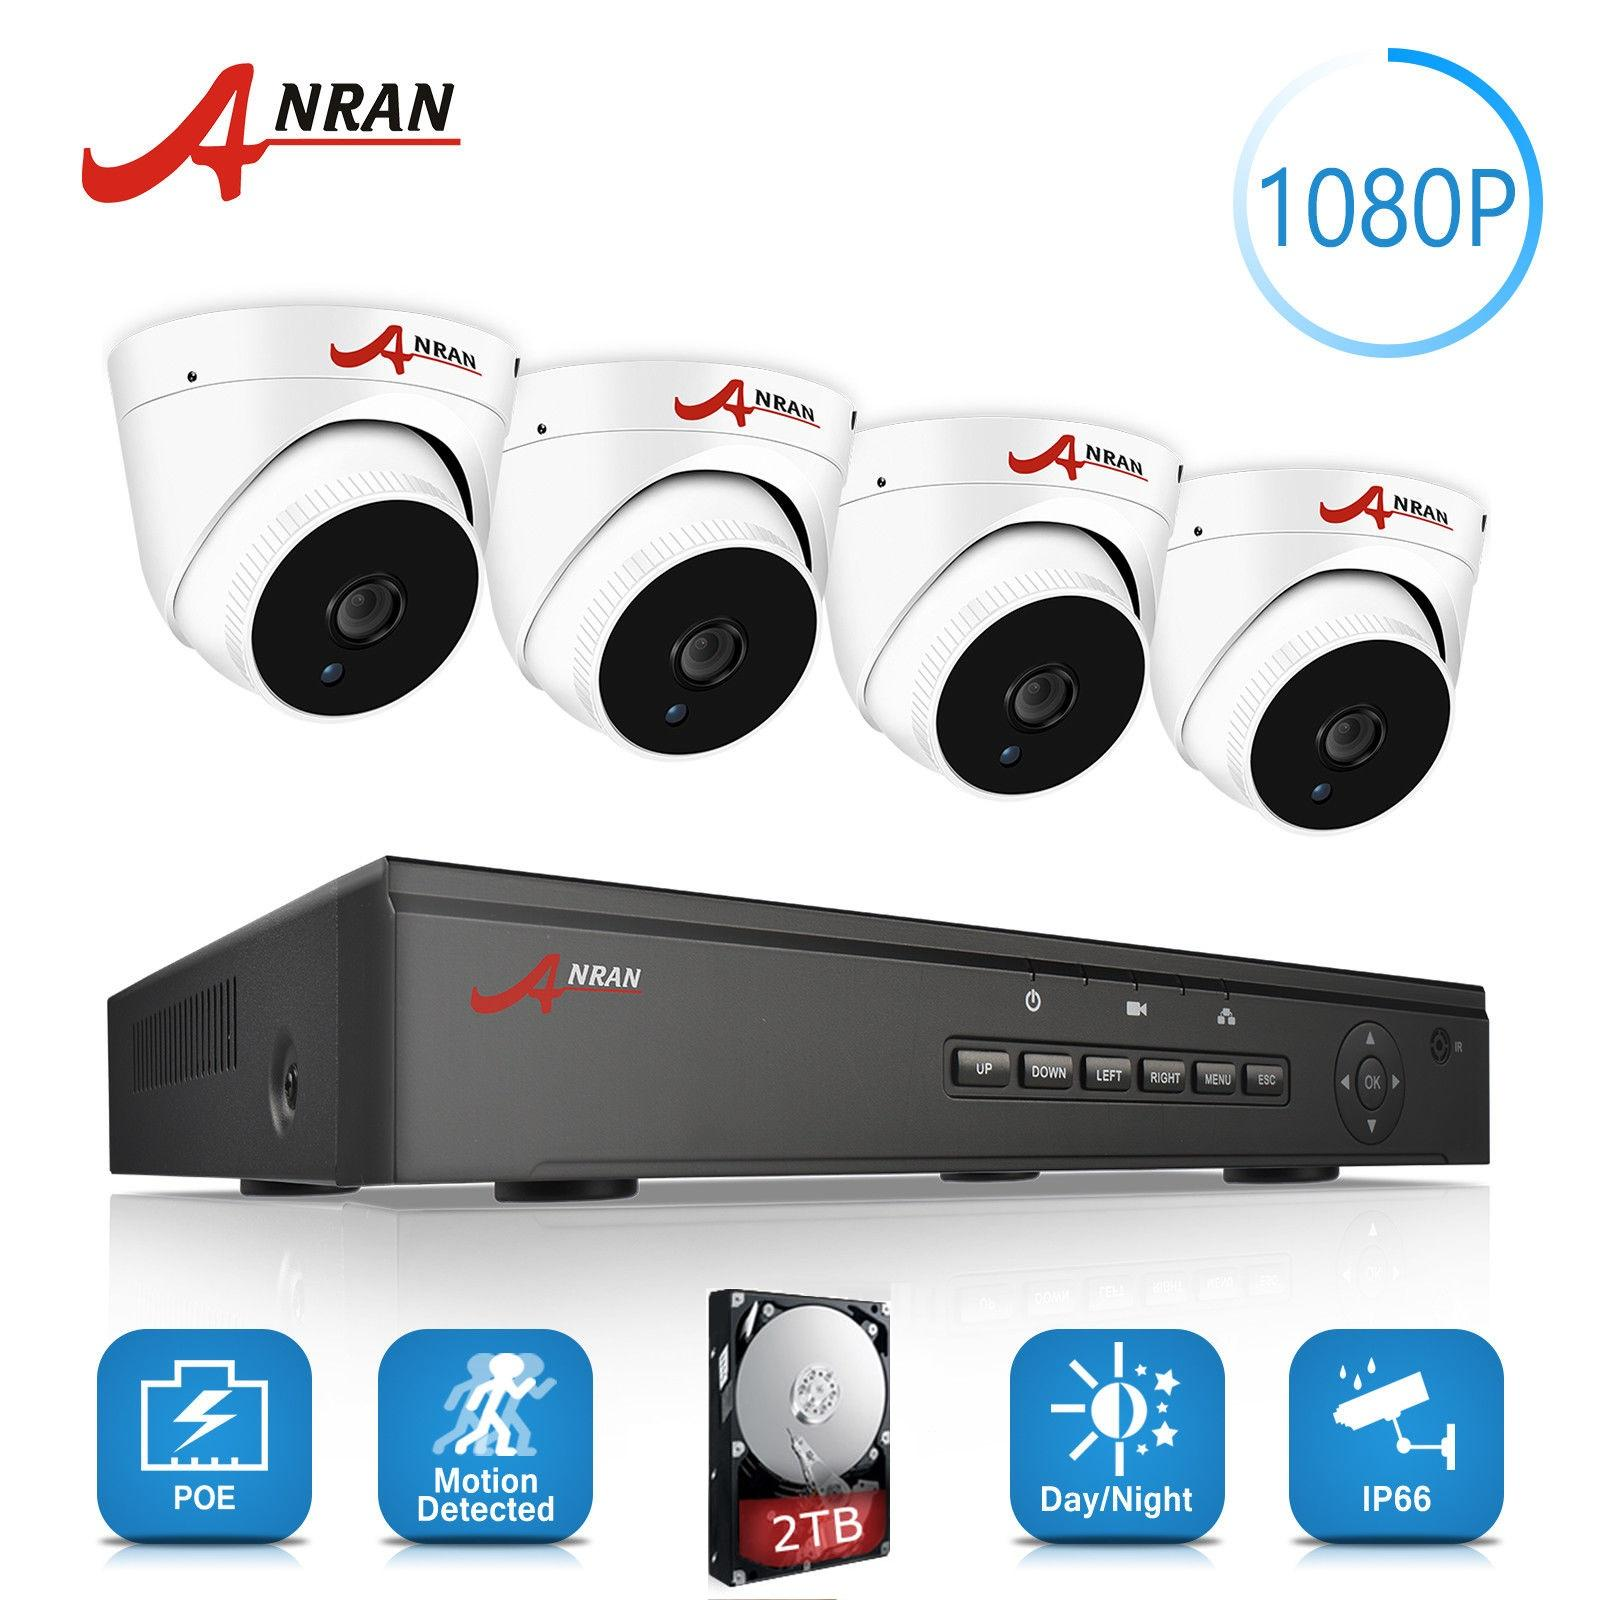 Anran 4Ch Nvr 48V Poe Cctv System Onvif P2P 1080P Hd H 264 Ir Night Vision Outdoor Security Poe Ip Camera Kit Coupon Code